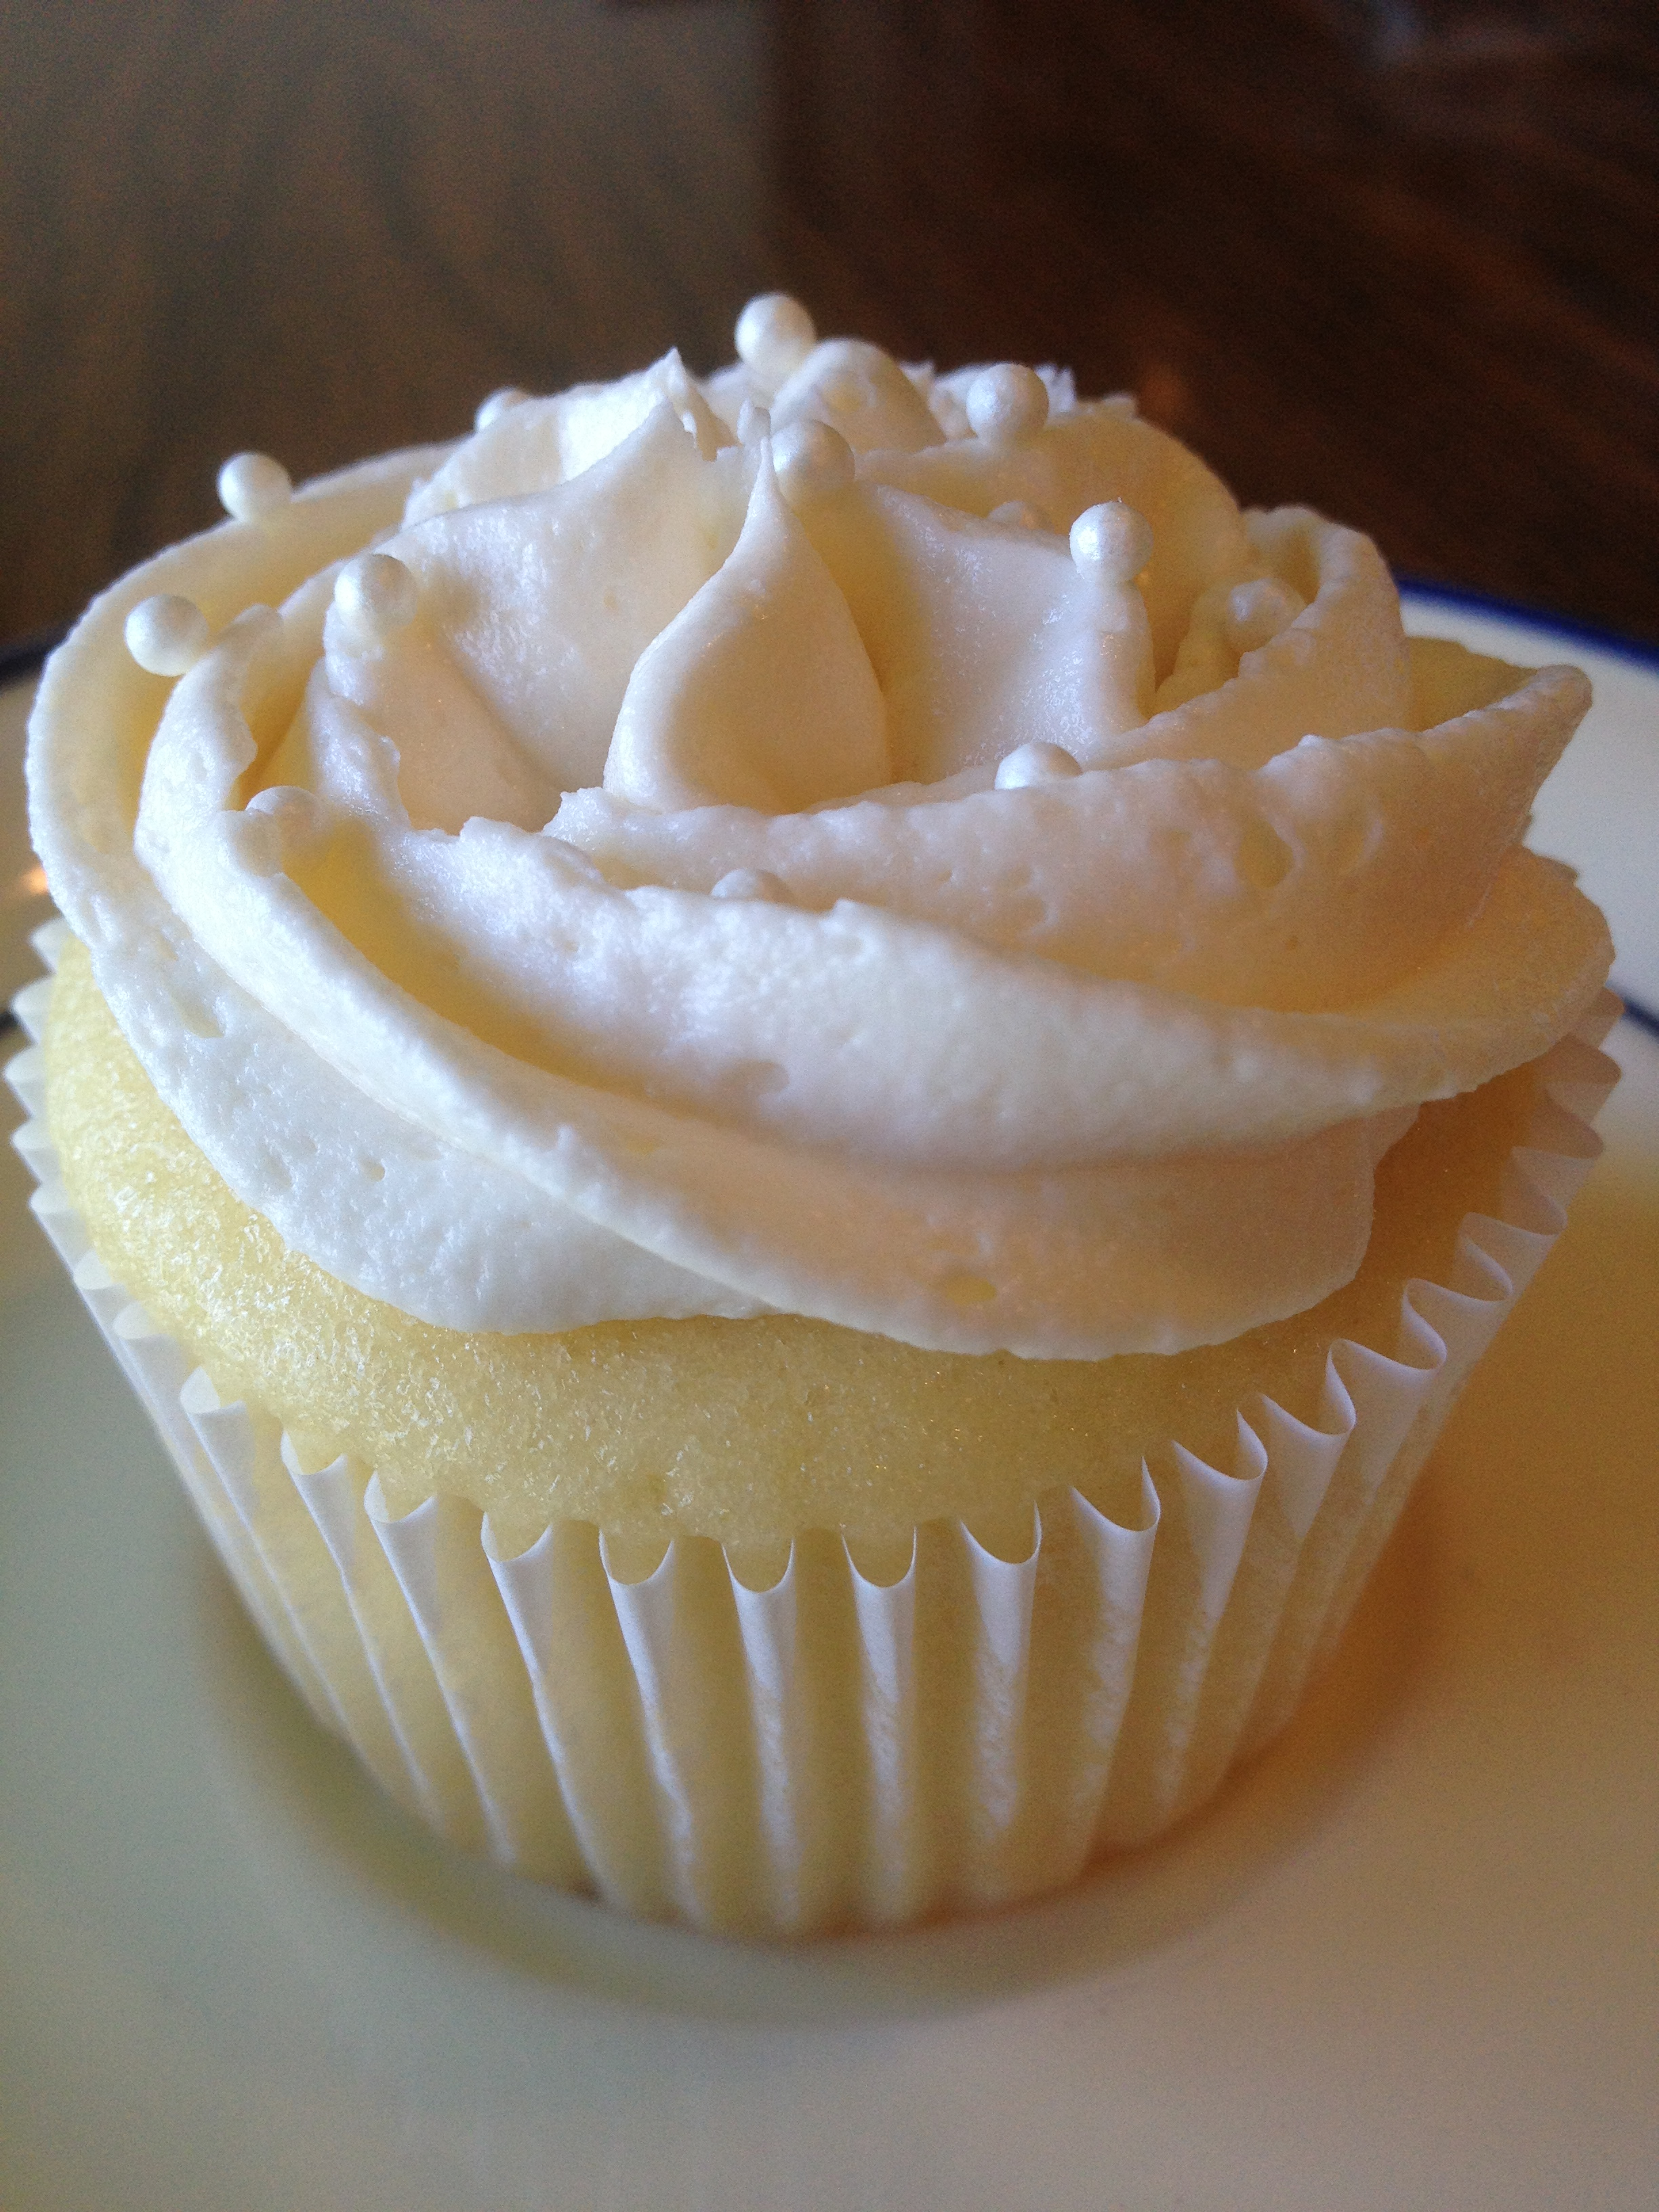 How To Make A Homemade White Cake Mix